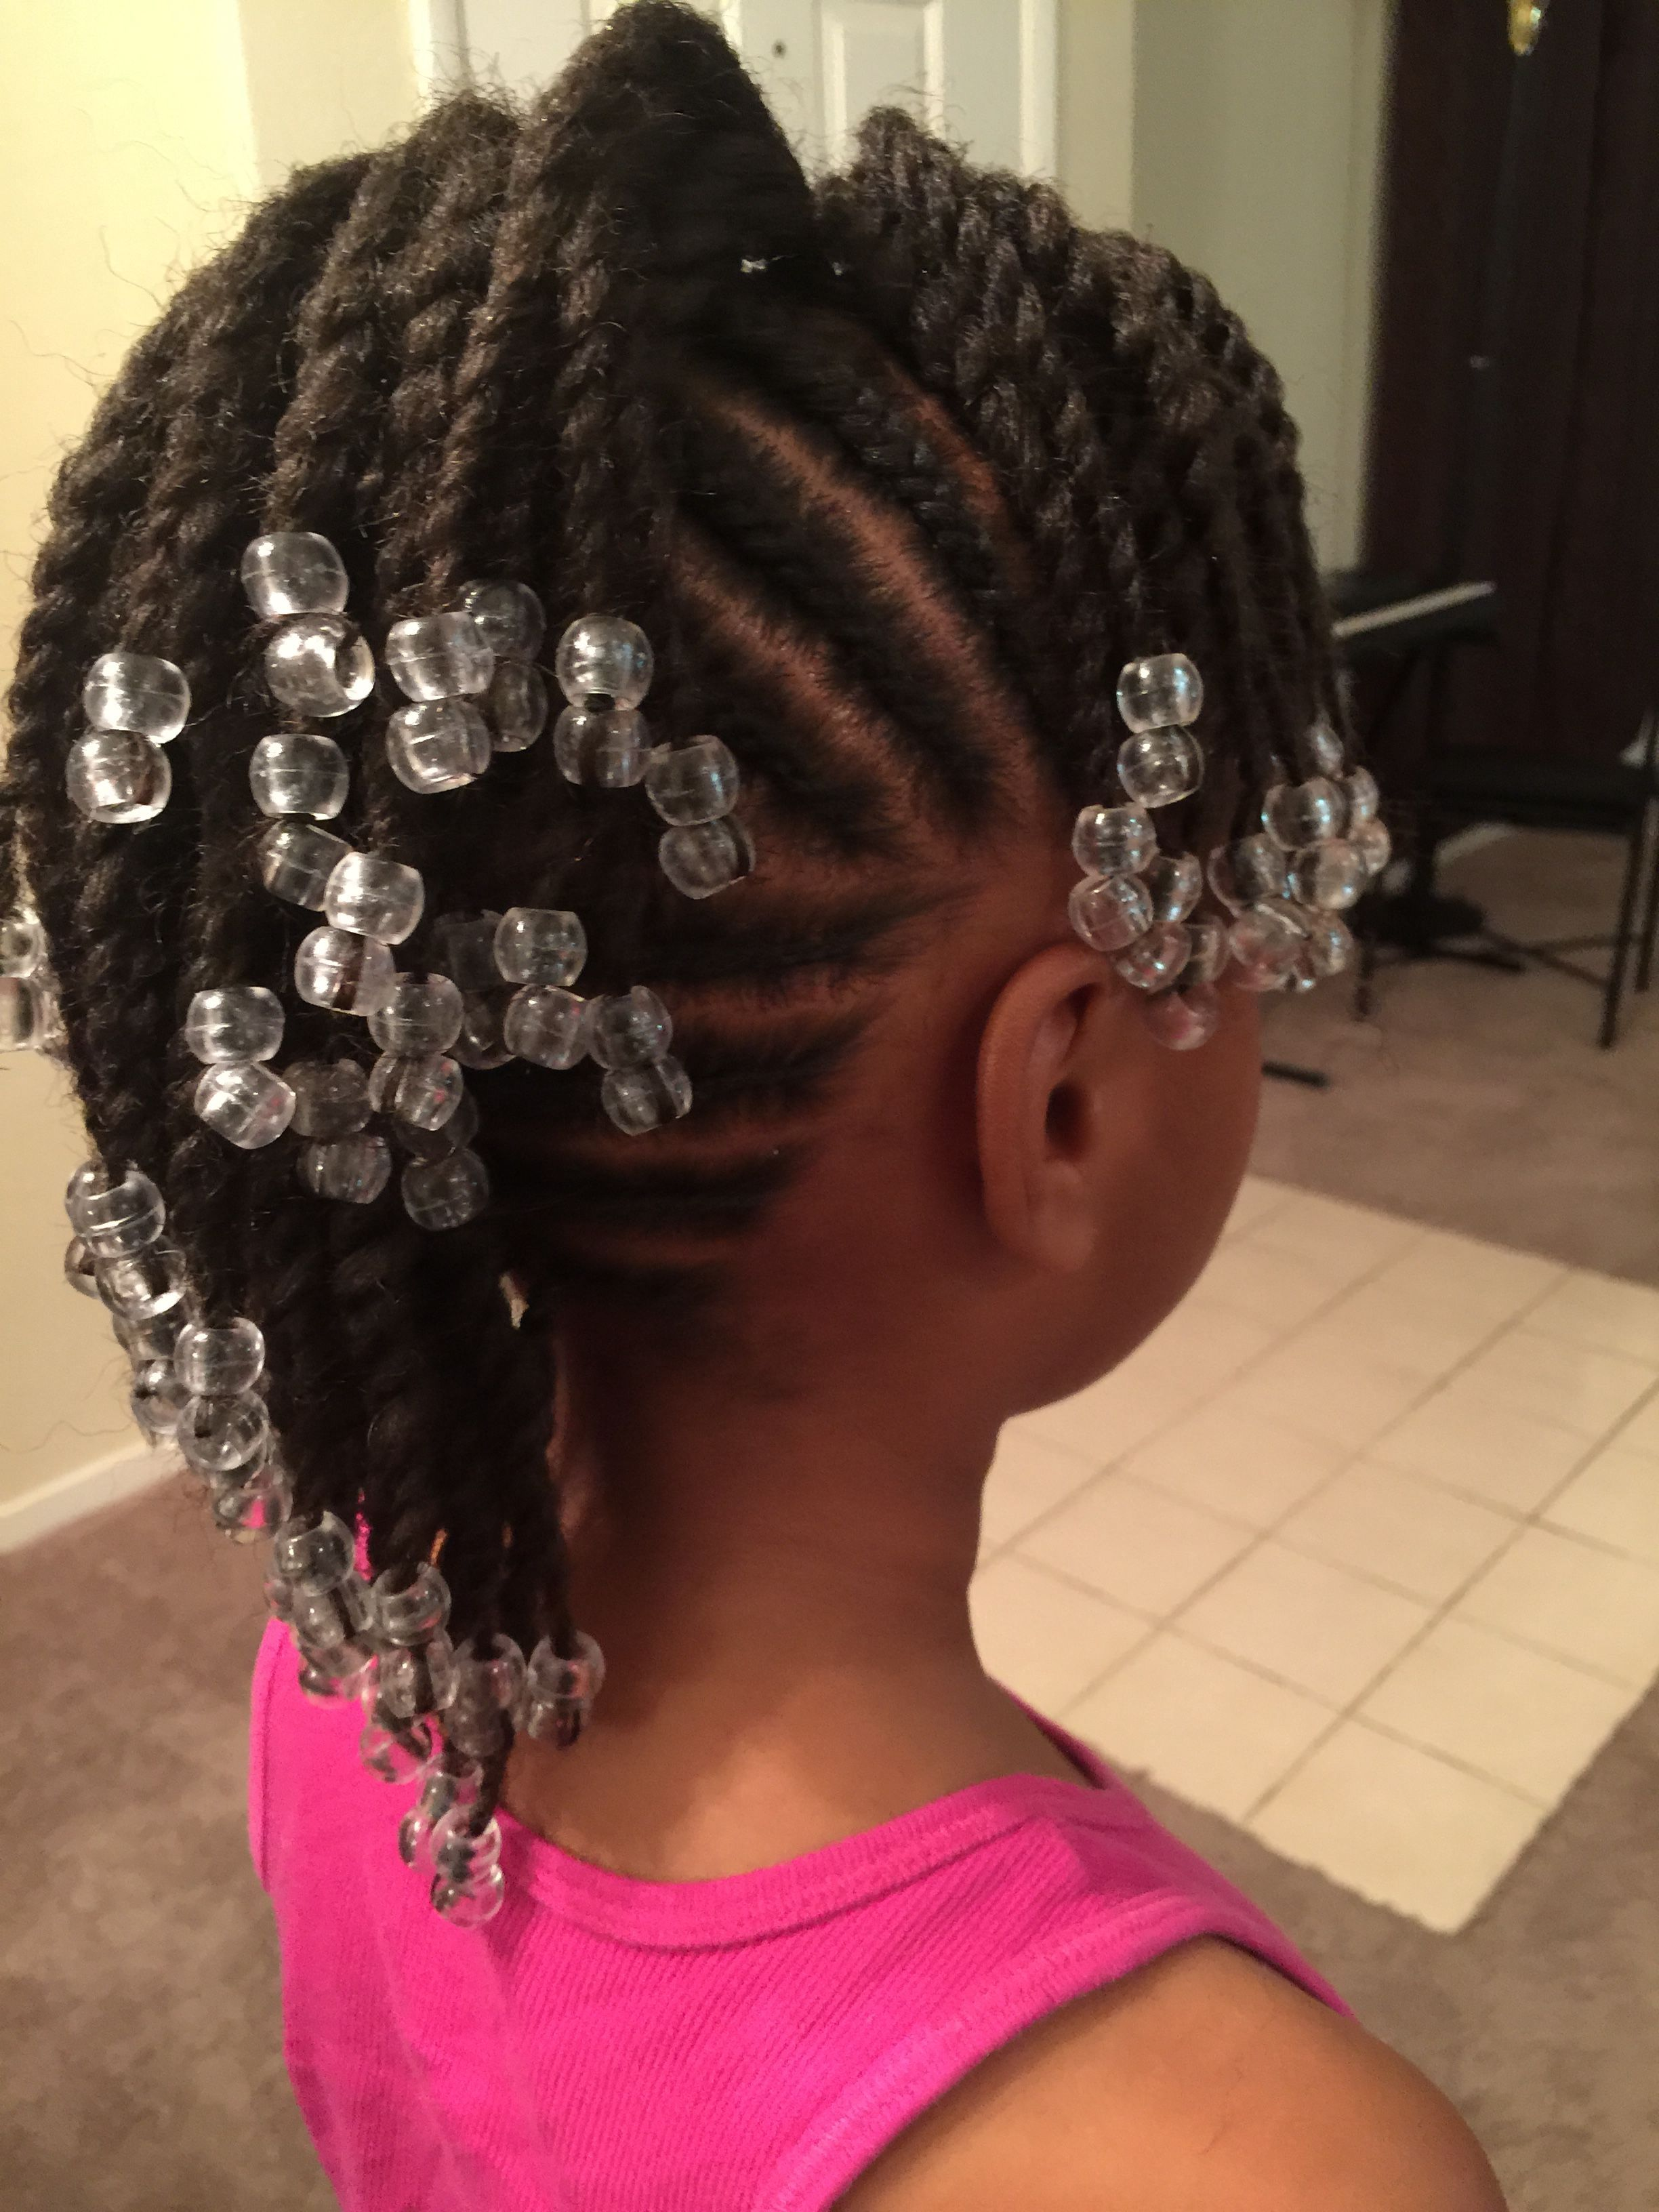 Simple cornrows braids little girl braids black hairstyles beads